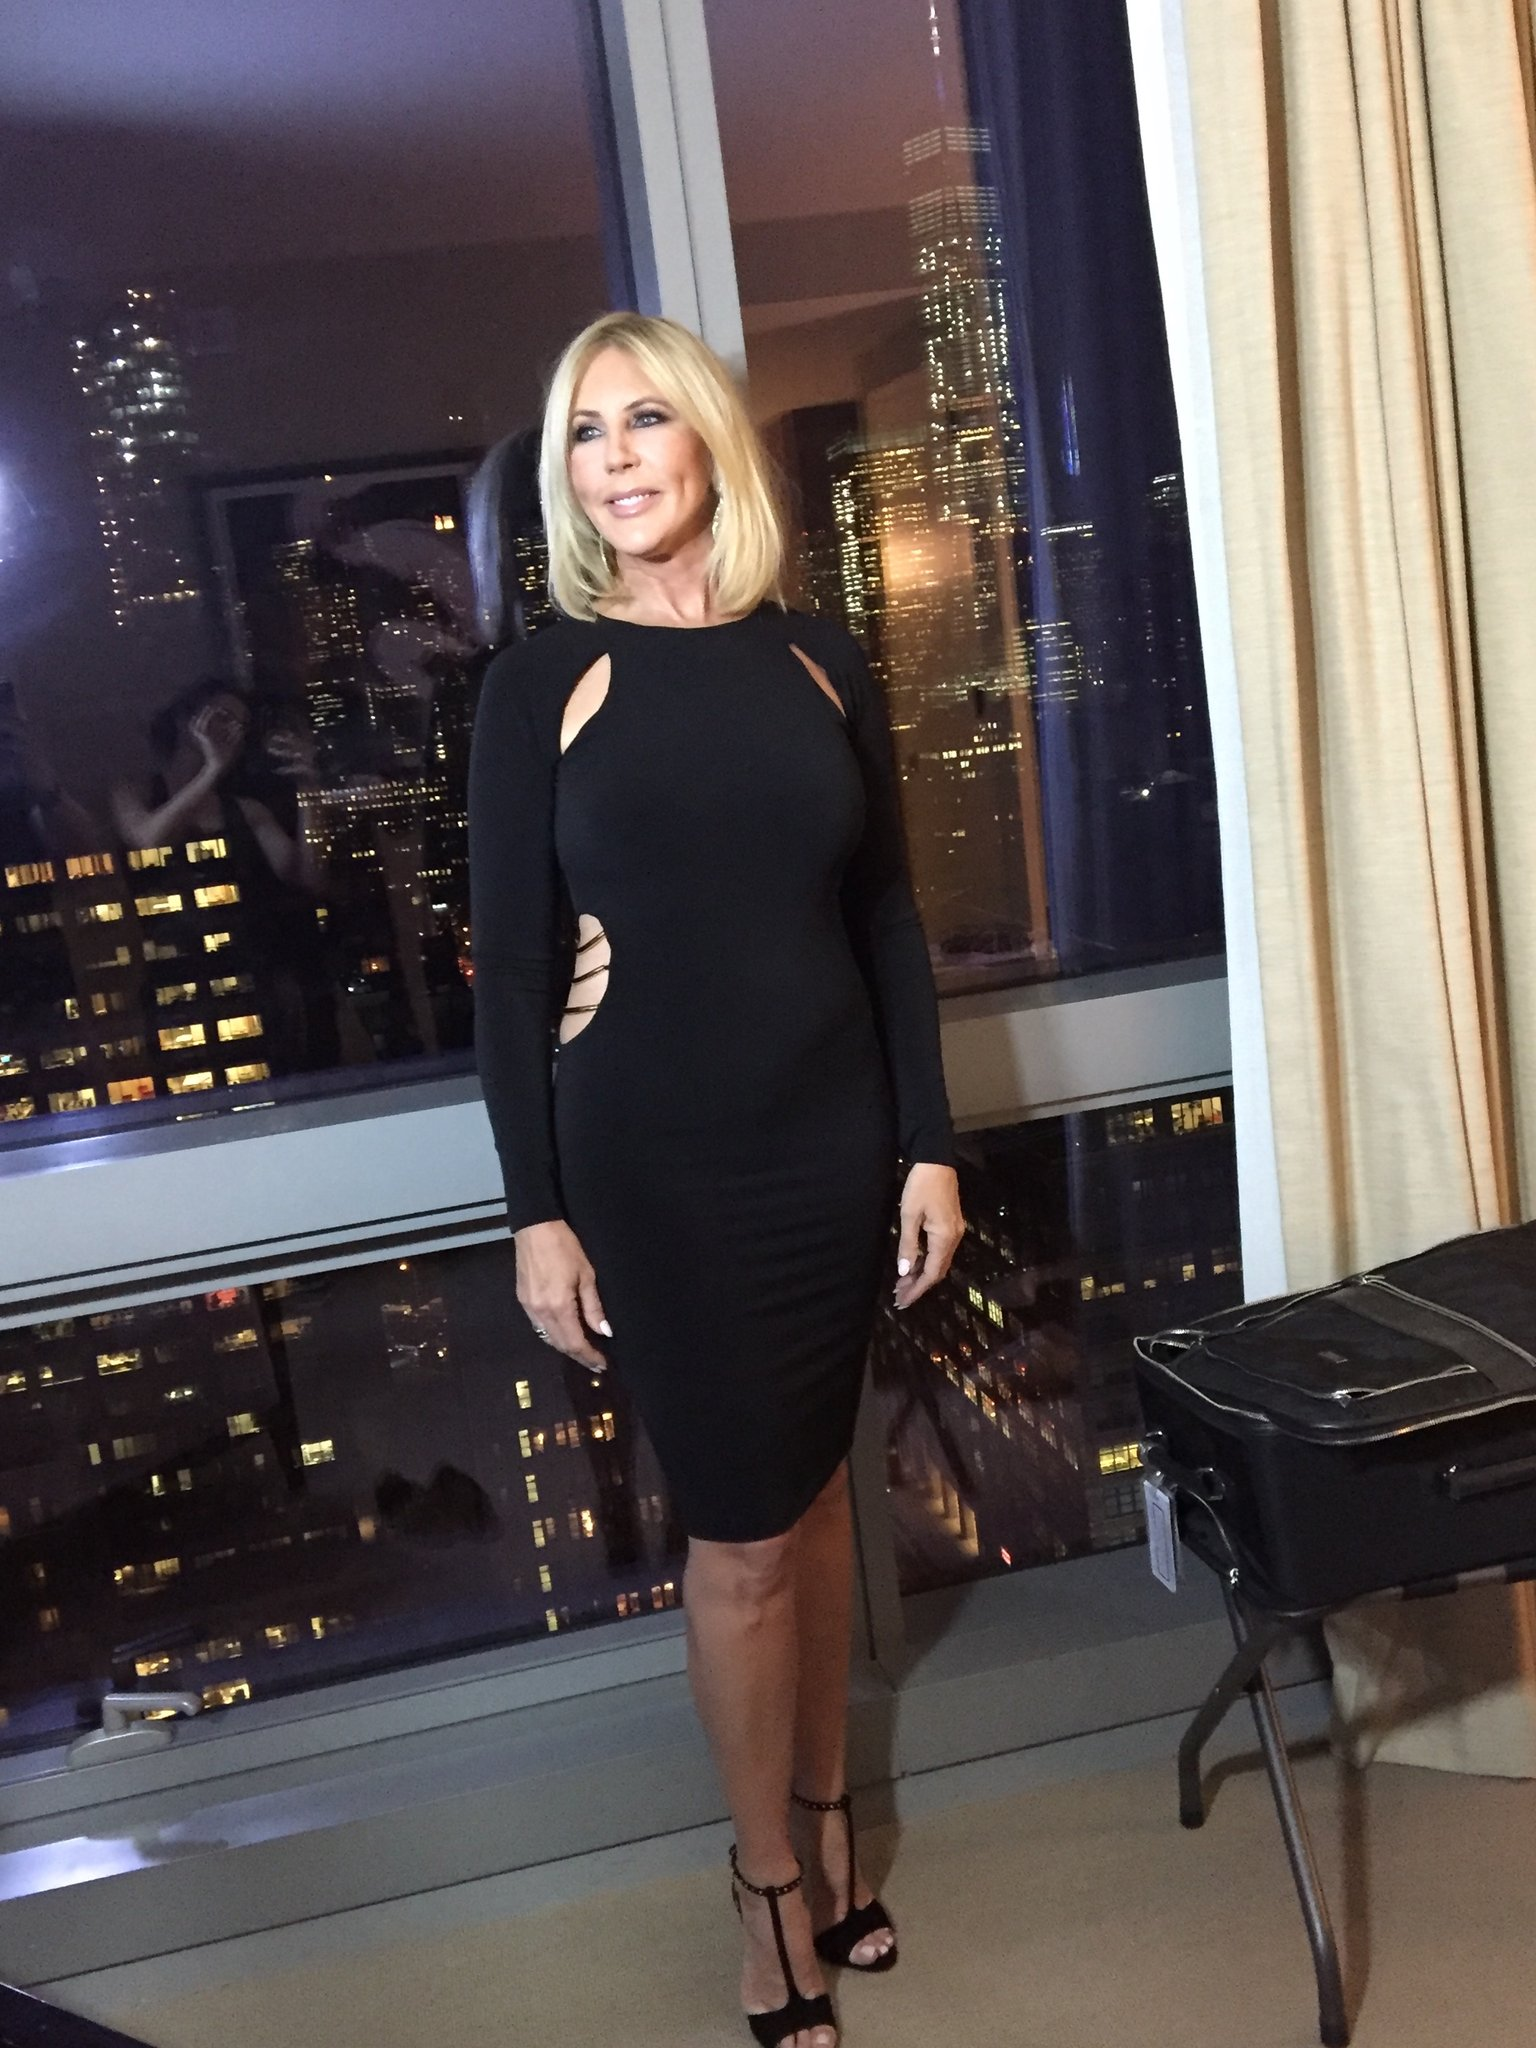 Vicki Gunvalson in a black dress showing off her weight loss.